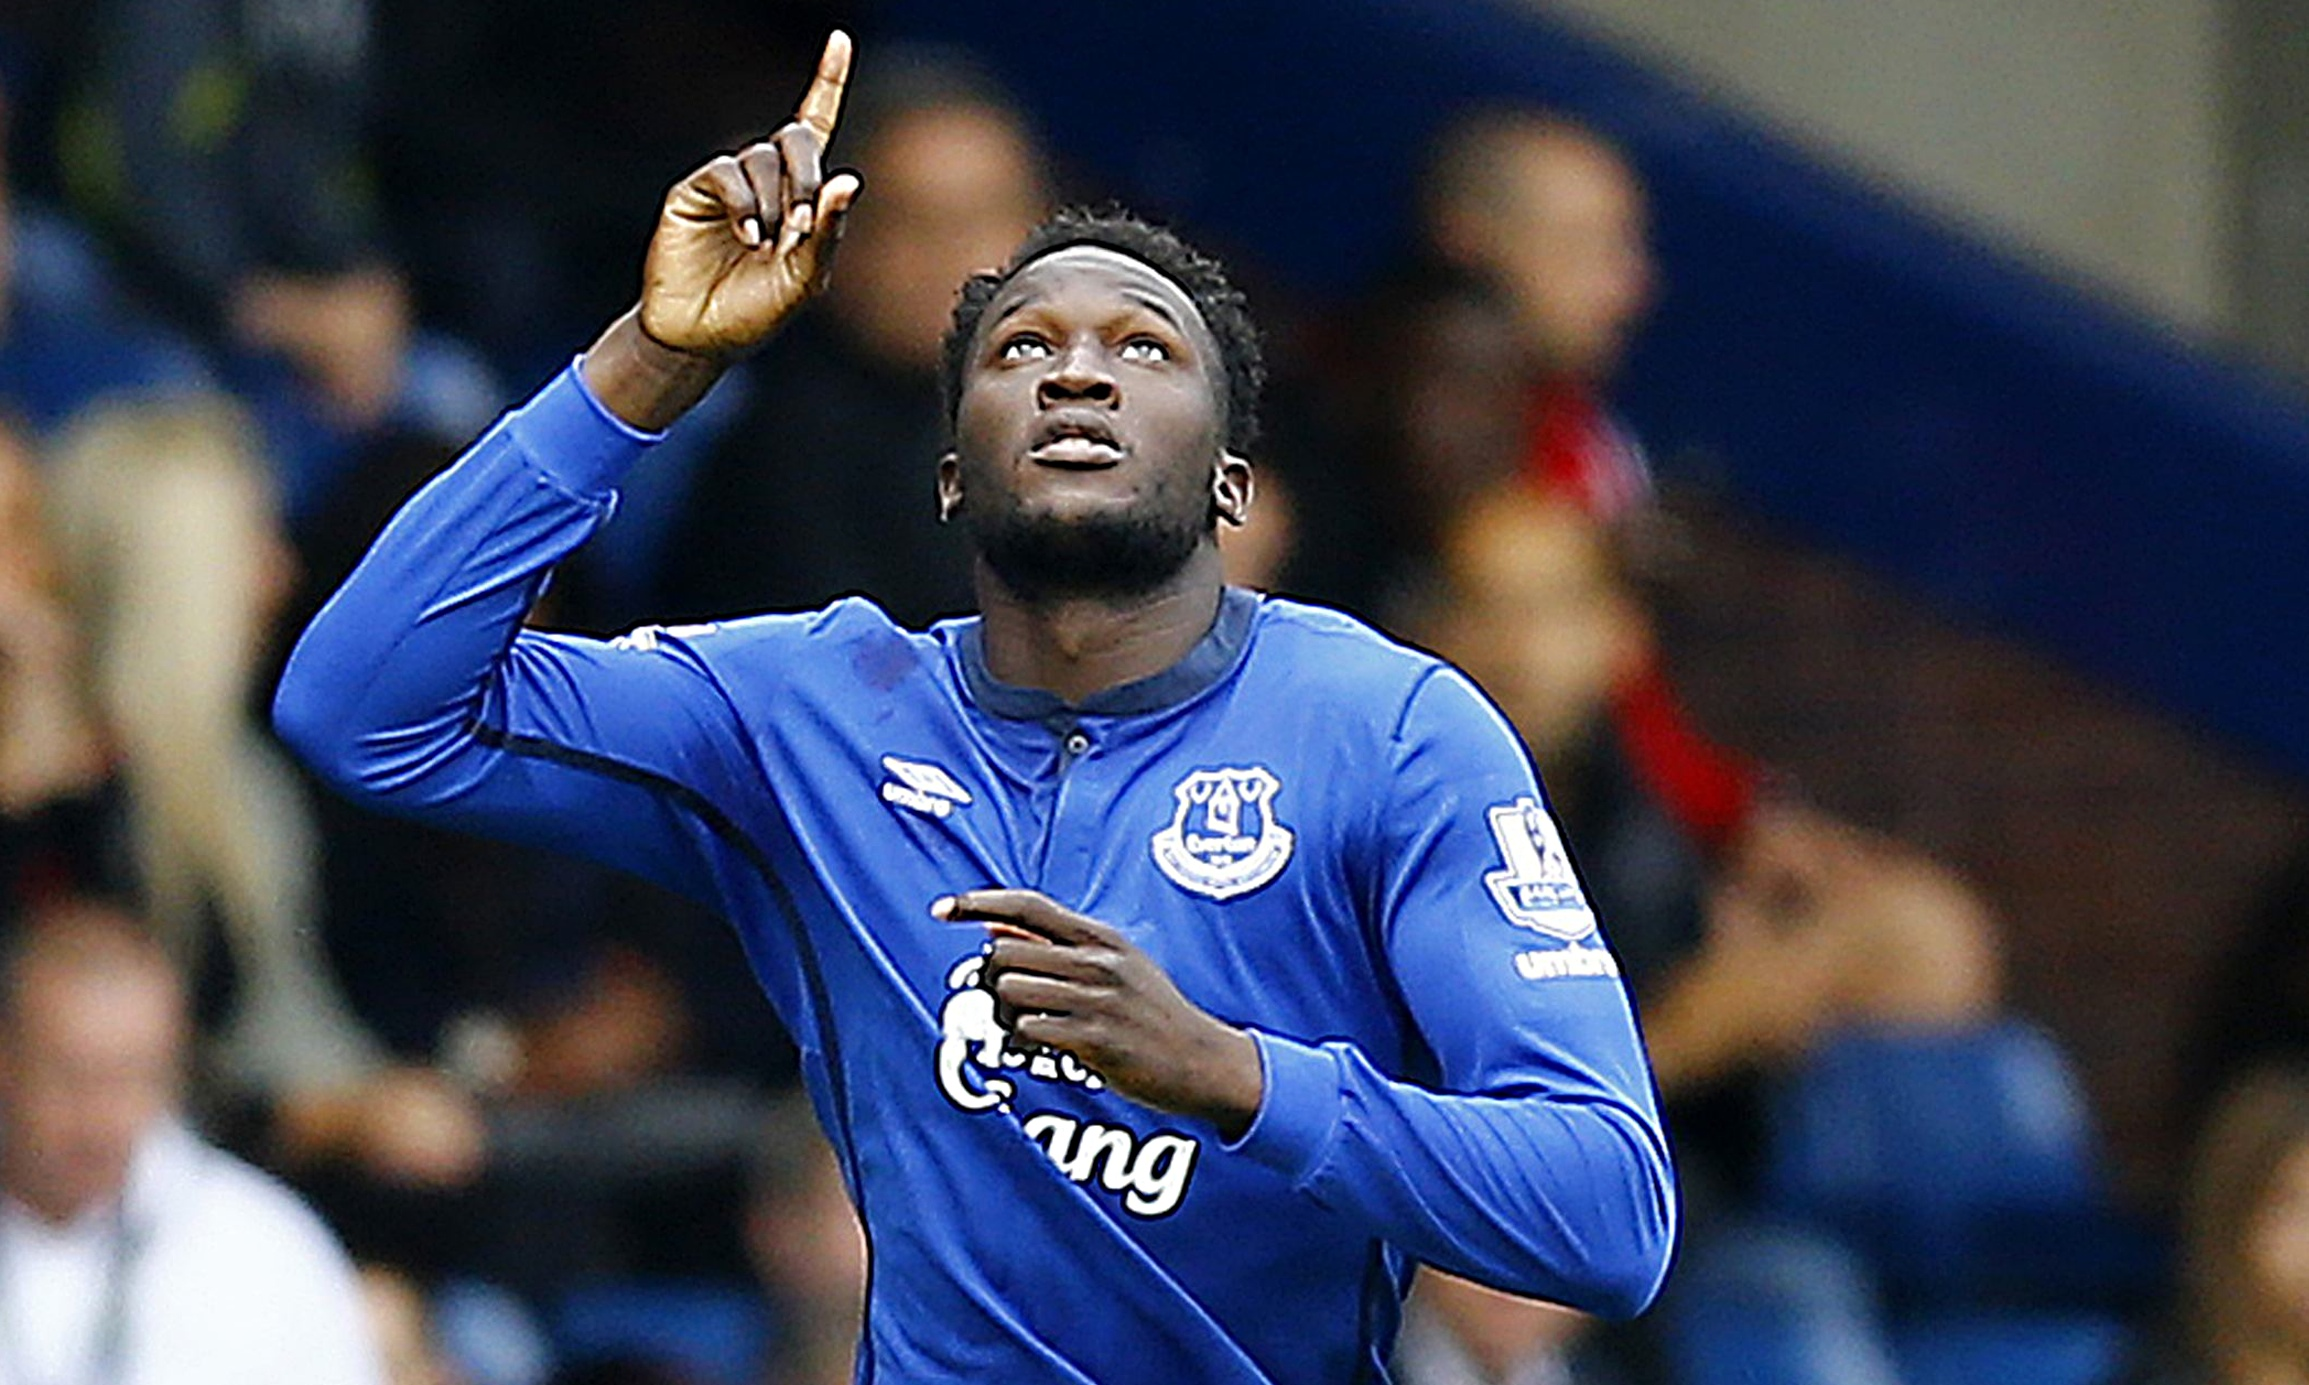 Romelu Lukaku can play his way back to full fitness, says Everton manager | Football | The Guardian